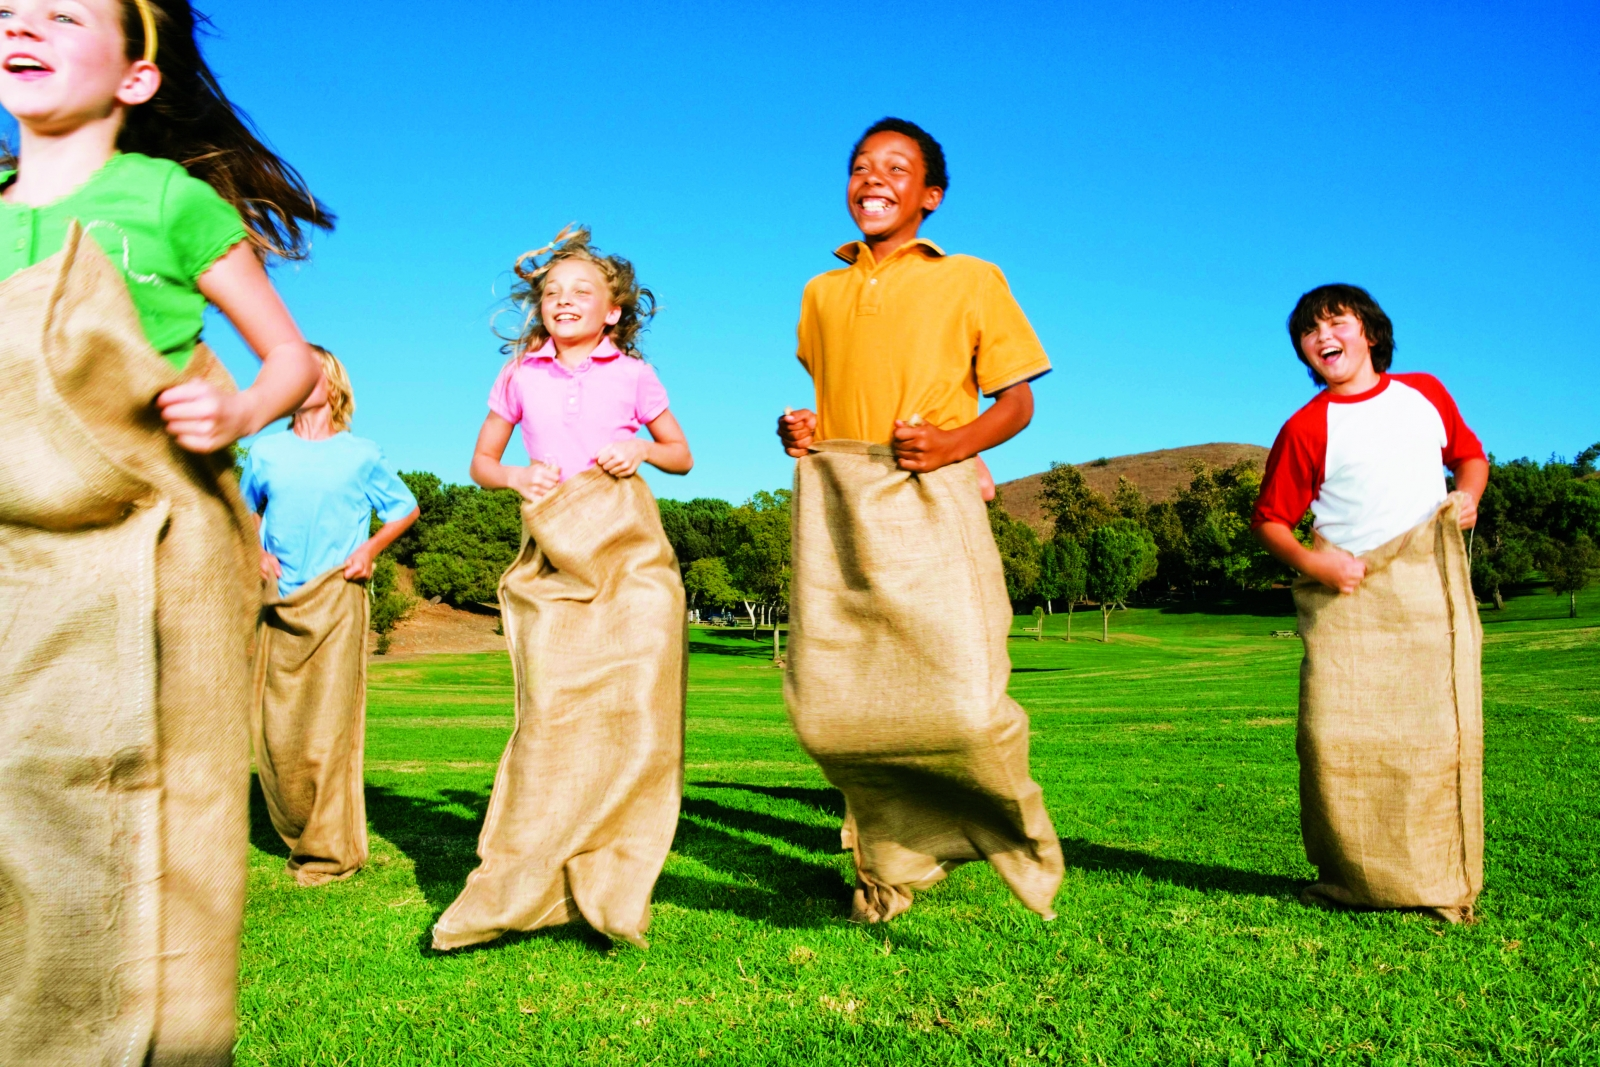 Kids in a sack race